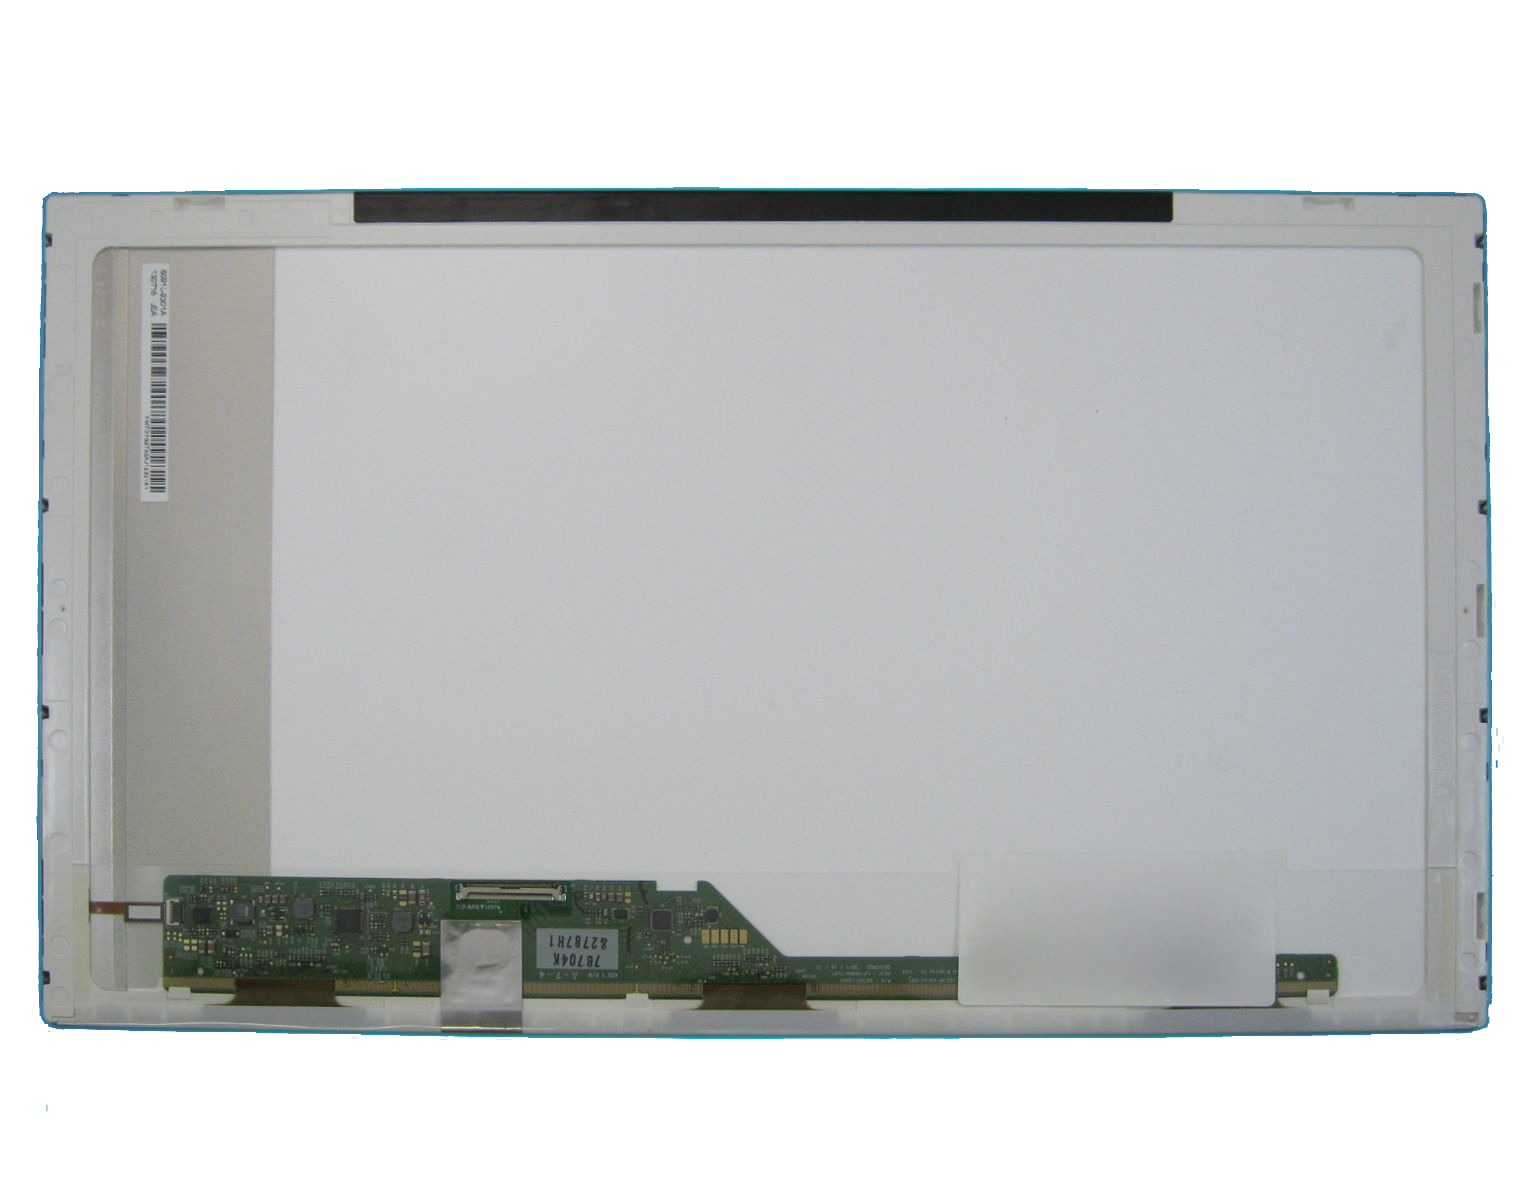 Фотография TTLCD Laptop LCD Screen 15.6 inch for HP-Compaq HP G62-463TX perfect screen without dead piexls